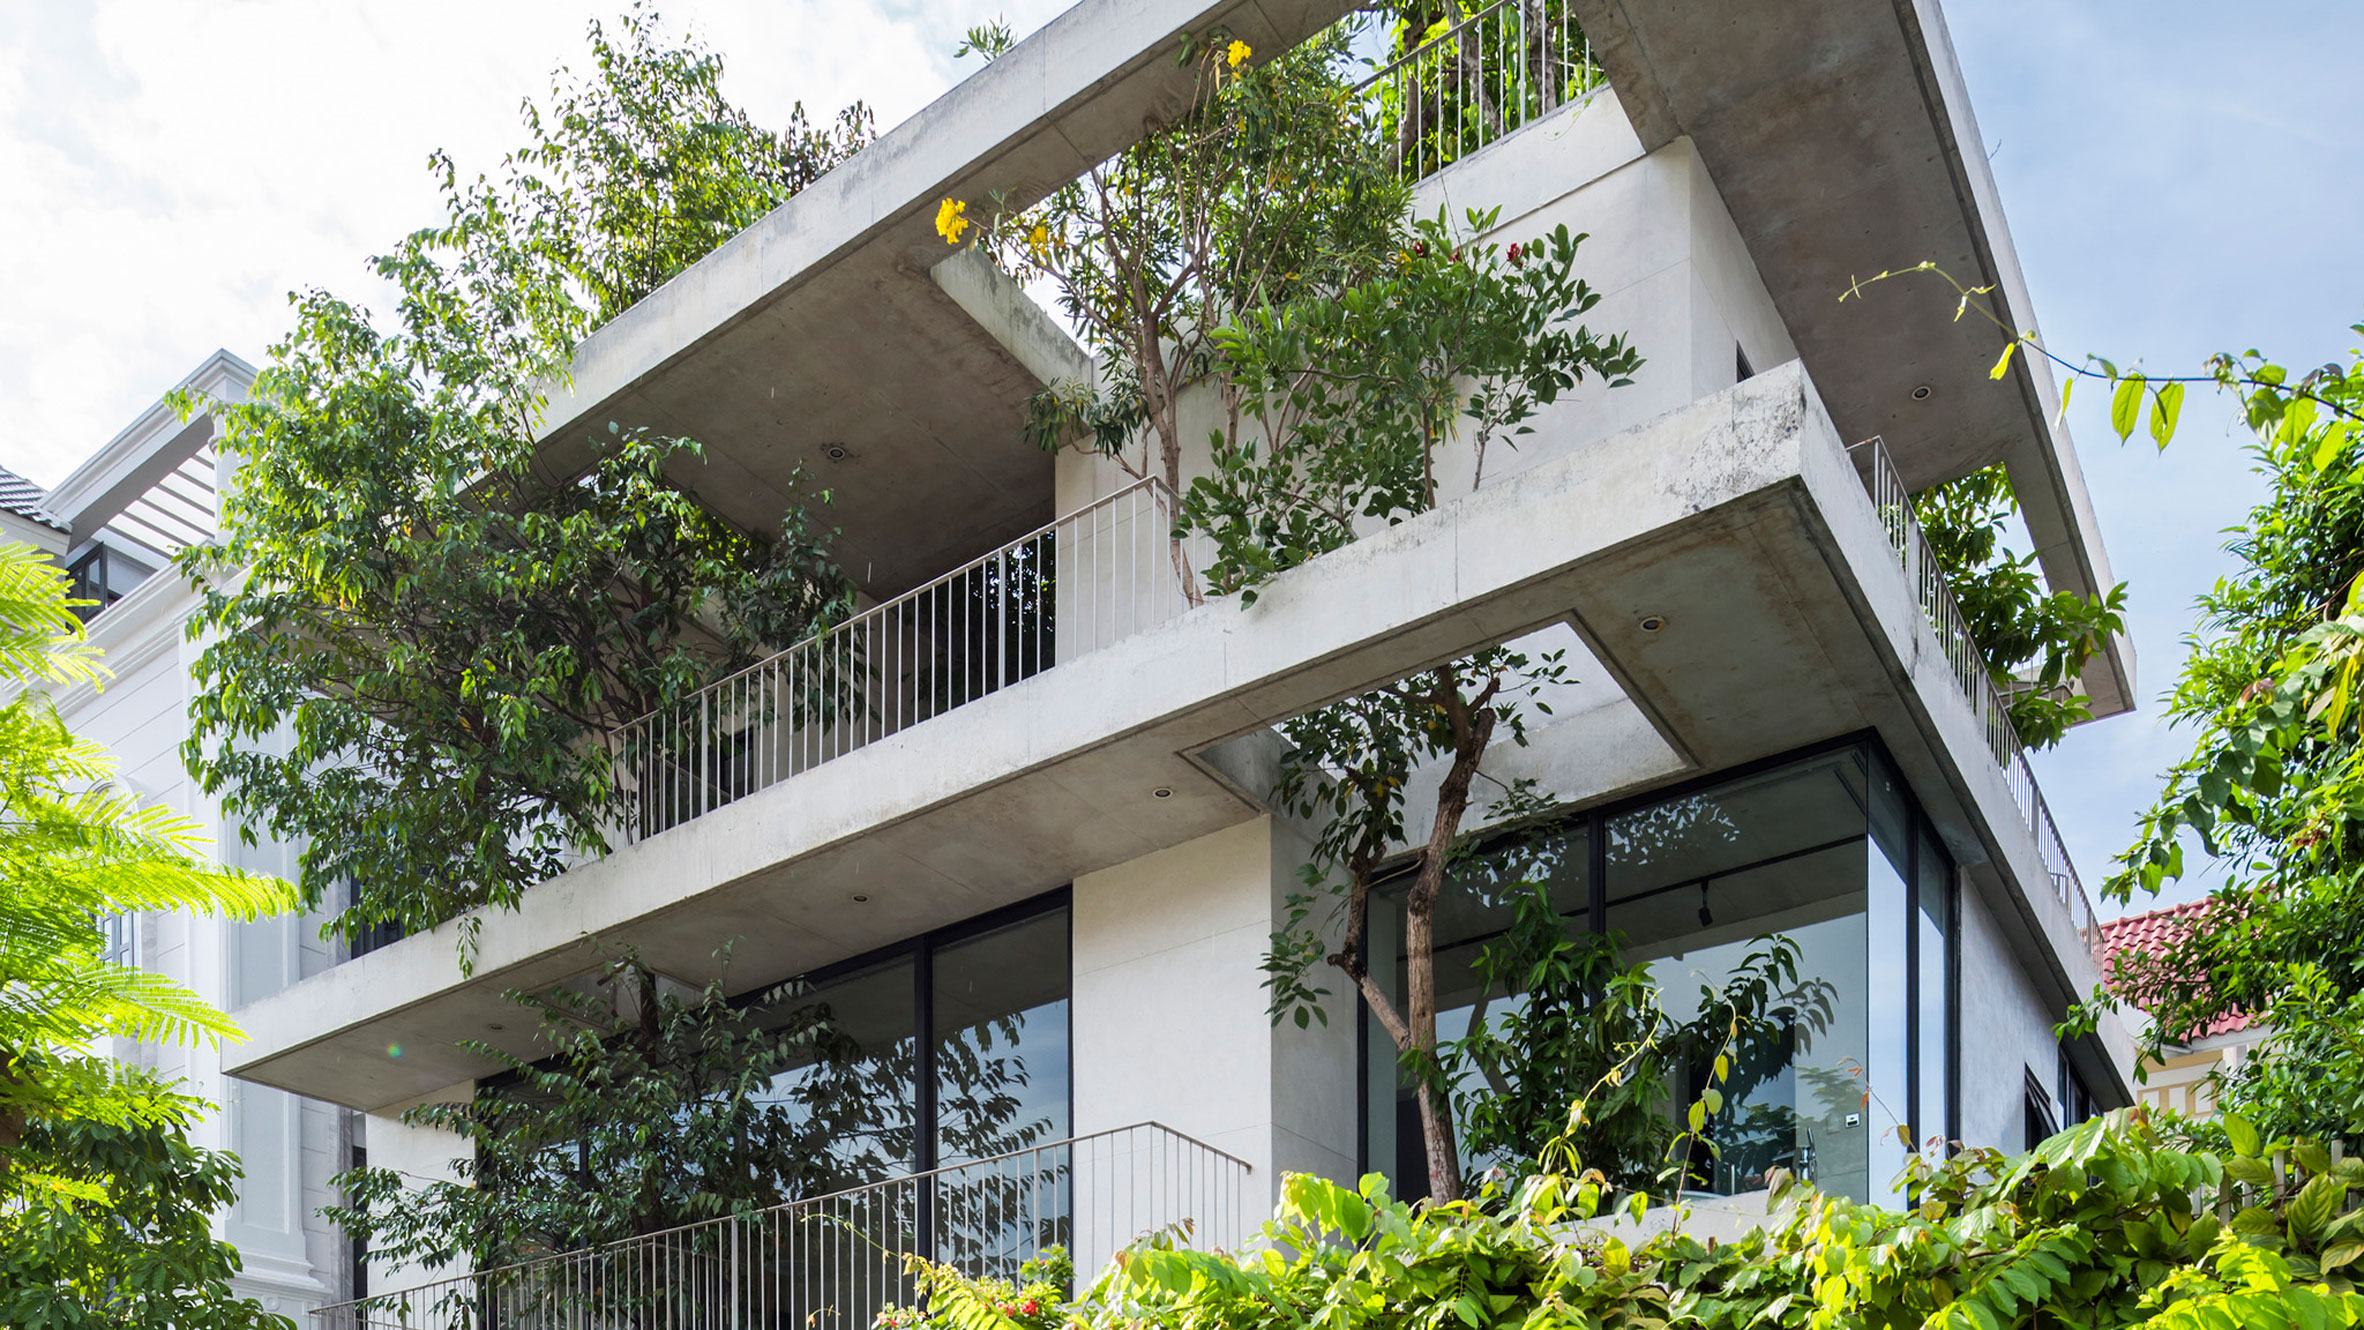 Stacked Planters House, Ho Chi Minh City, Vietnam, by Vo Trong Nghia Architects